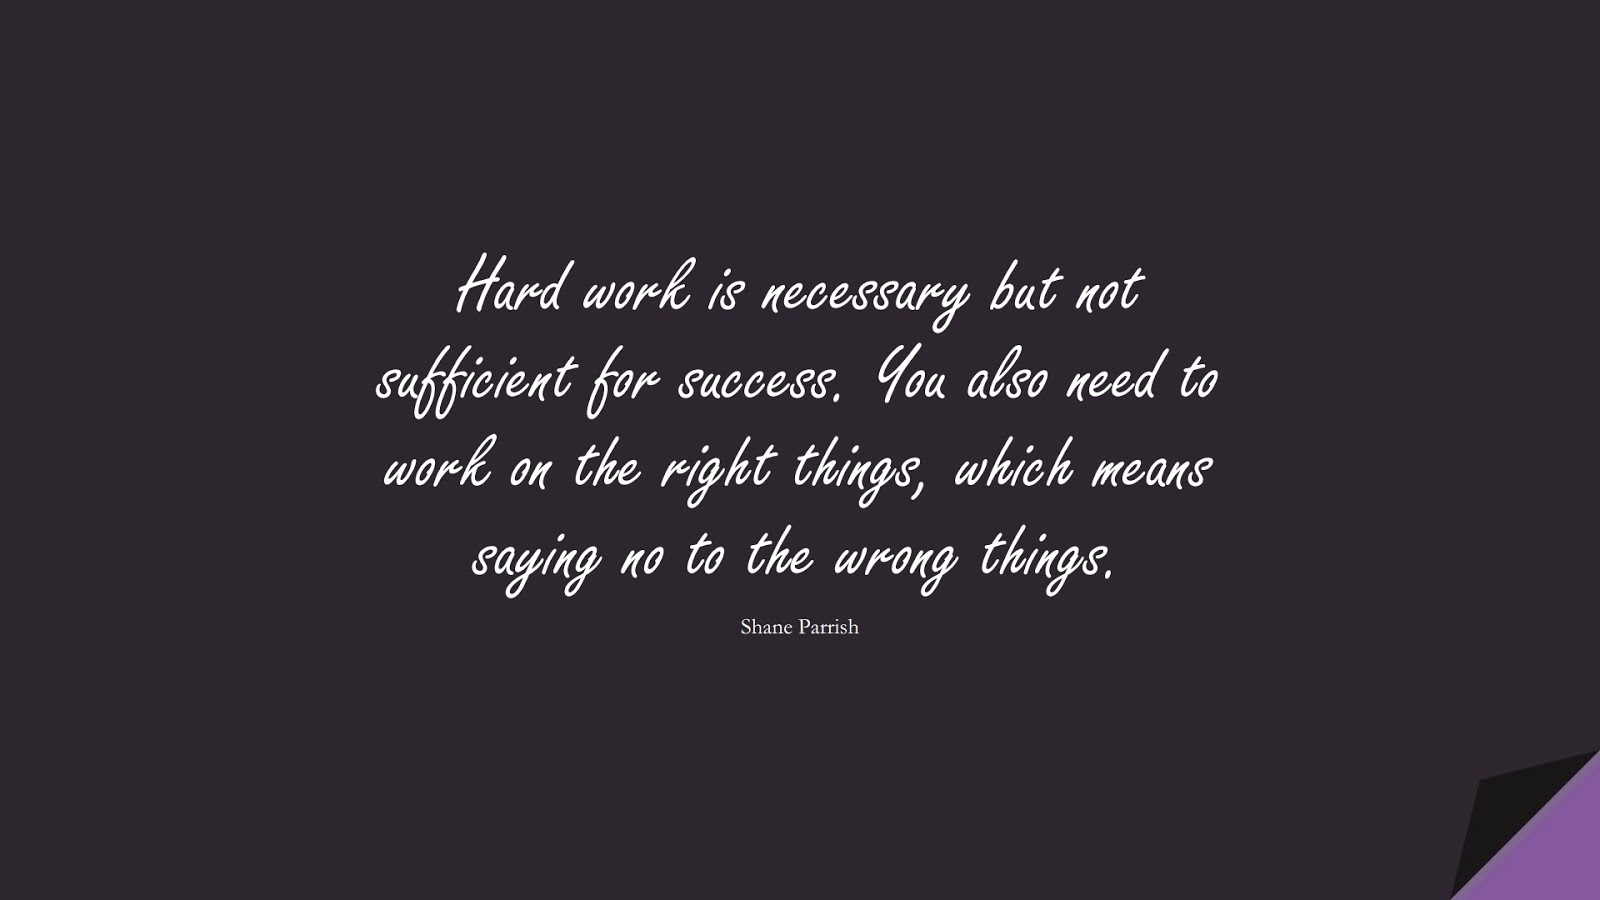 Hard work is necessary but not sufficient for success. You also need to work on the right things, which means saying no to the wrong things. (Shane Parrish);  #PerseveranceQuotes